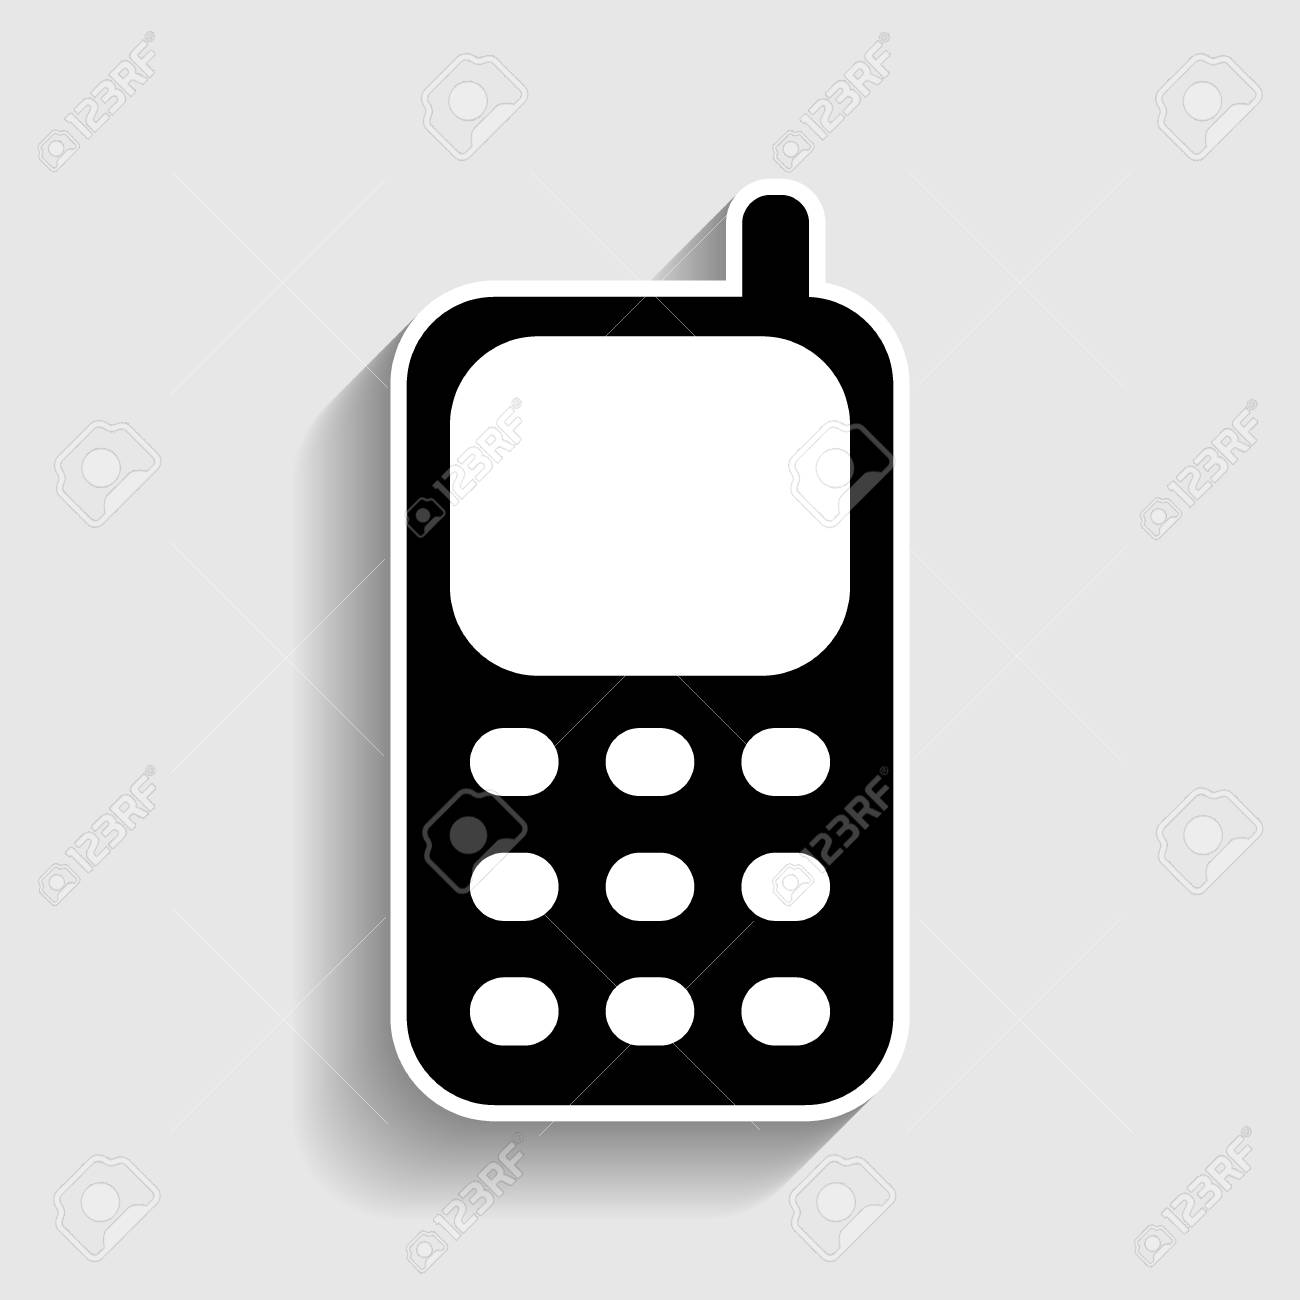 Cell Phone Icon. Sticker Style Icon With Shadow On Gray. Royalty Free Cliparts, Vectors, And Stock Illustration. Image 56378382.